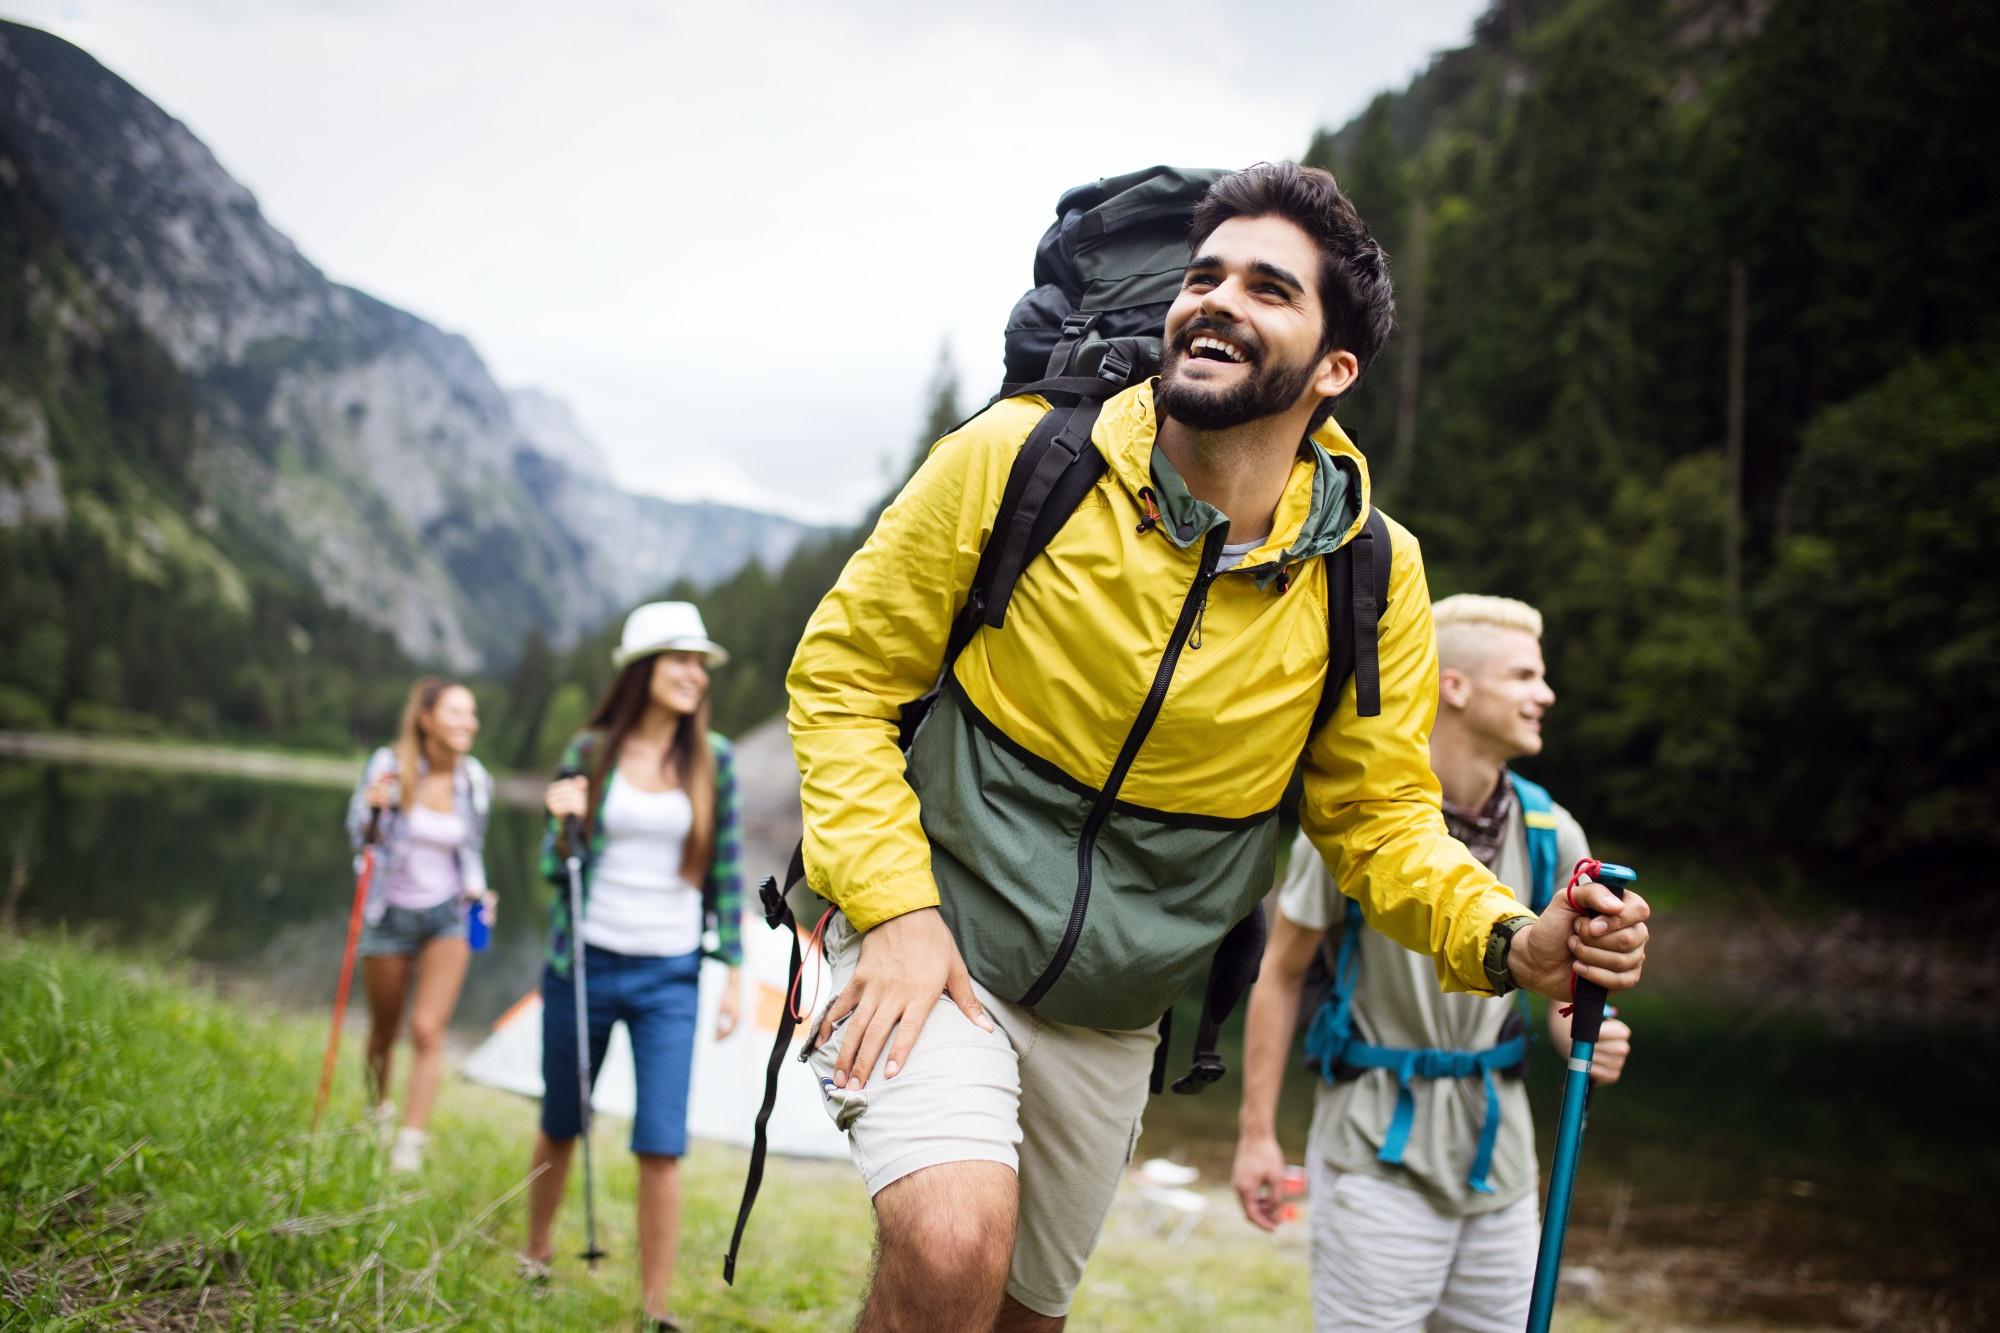 Hiking Checklist: What to Pack for a Hiking Trip